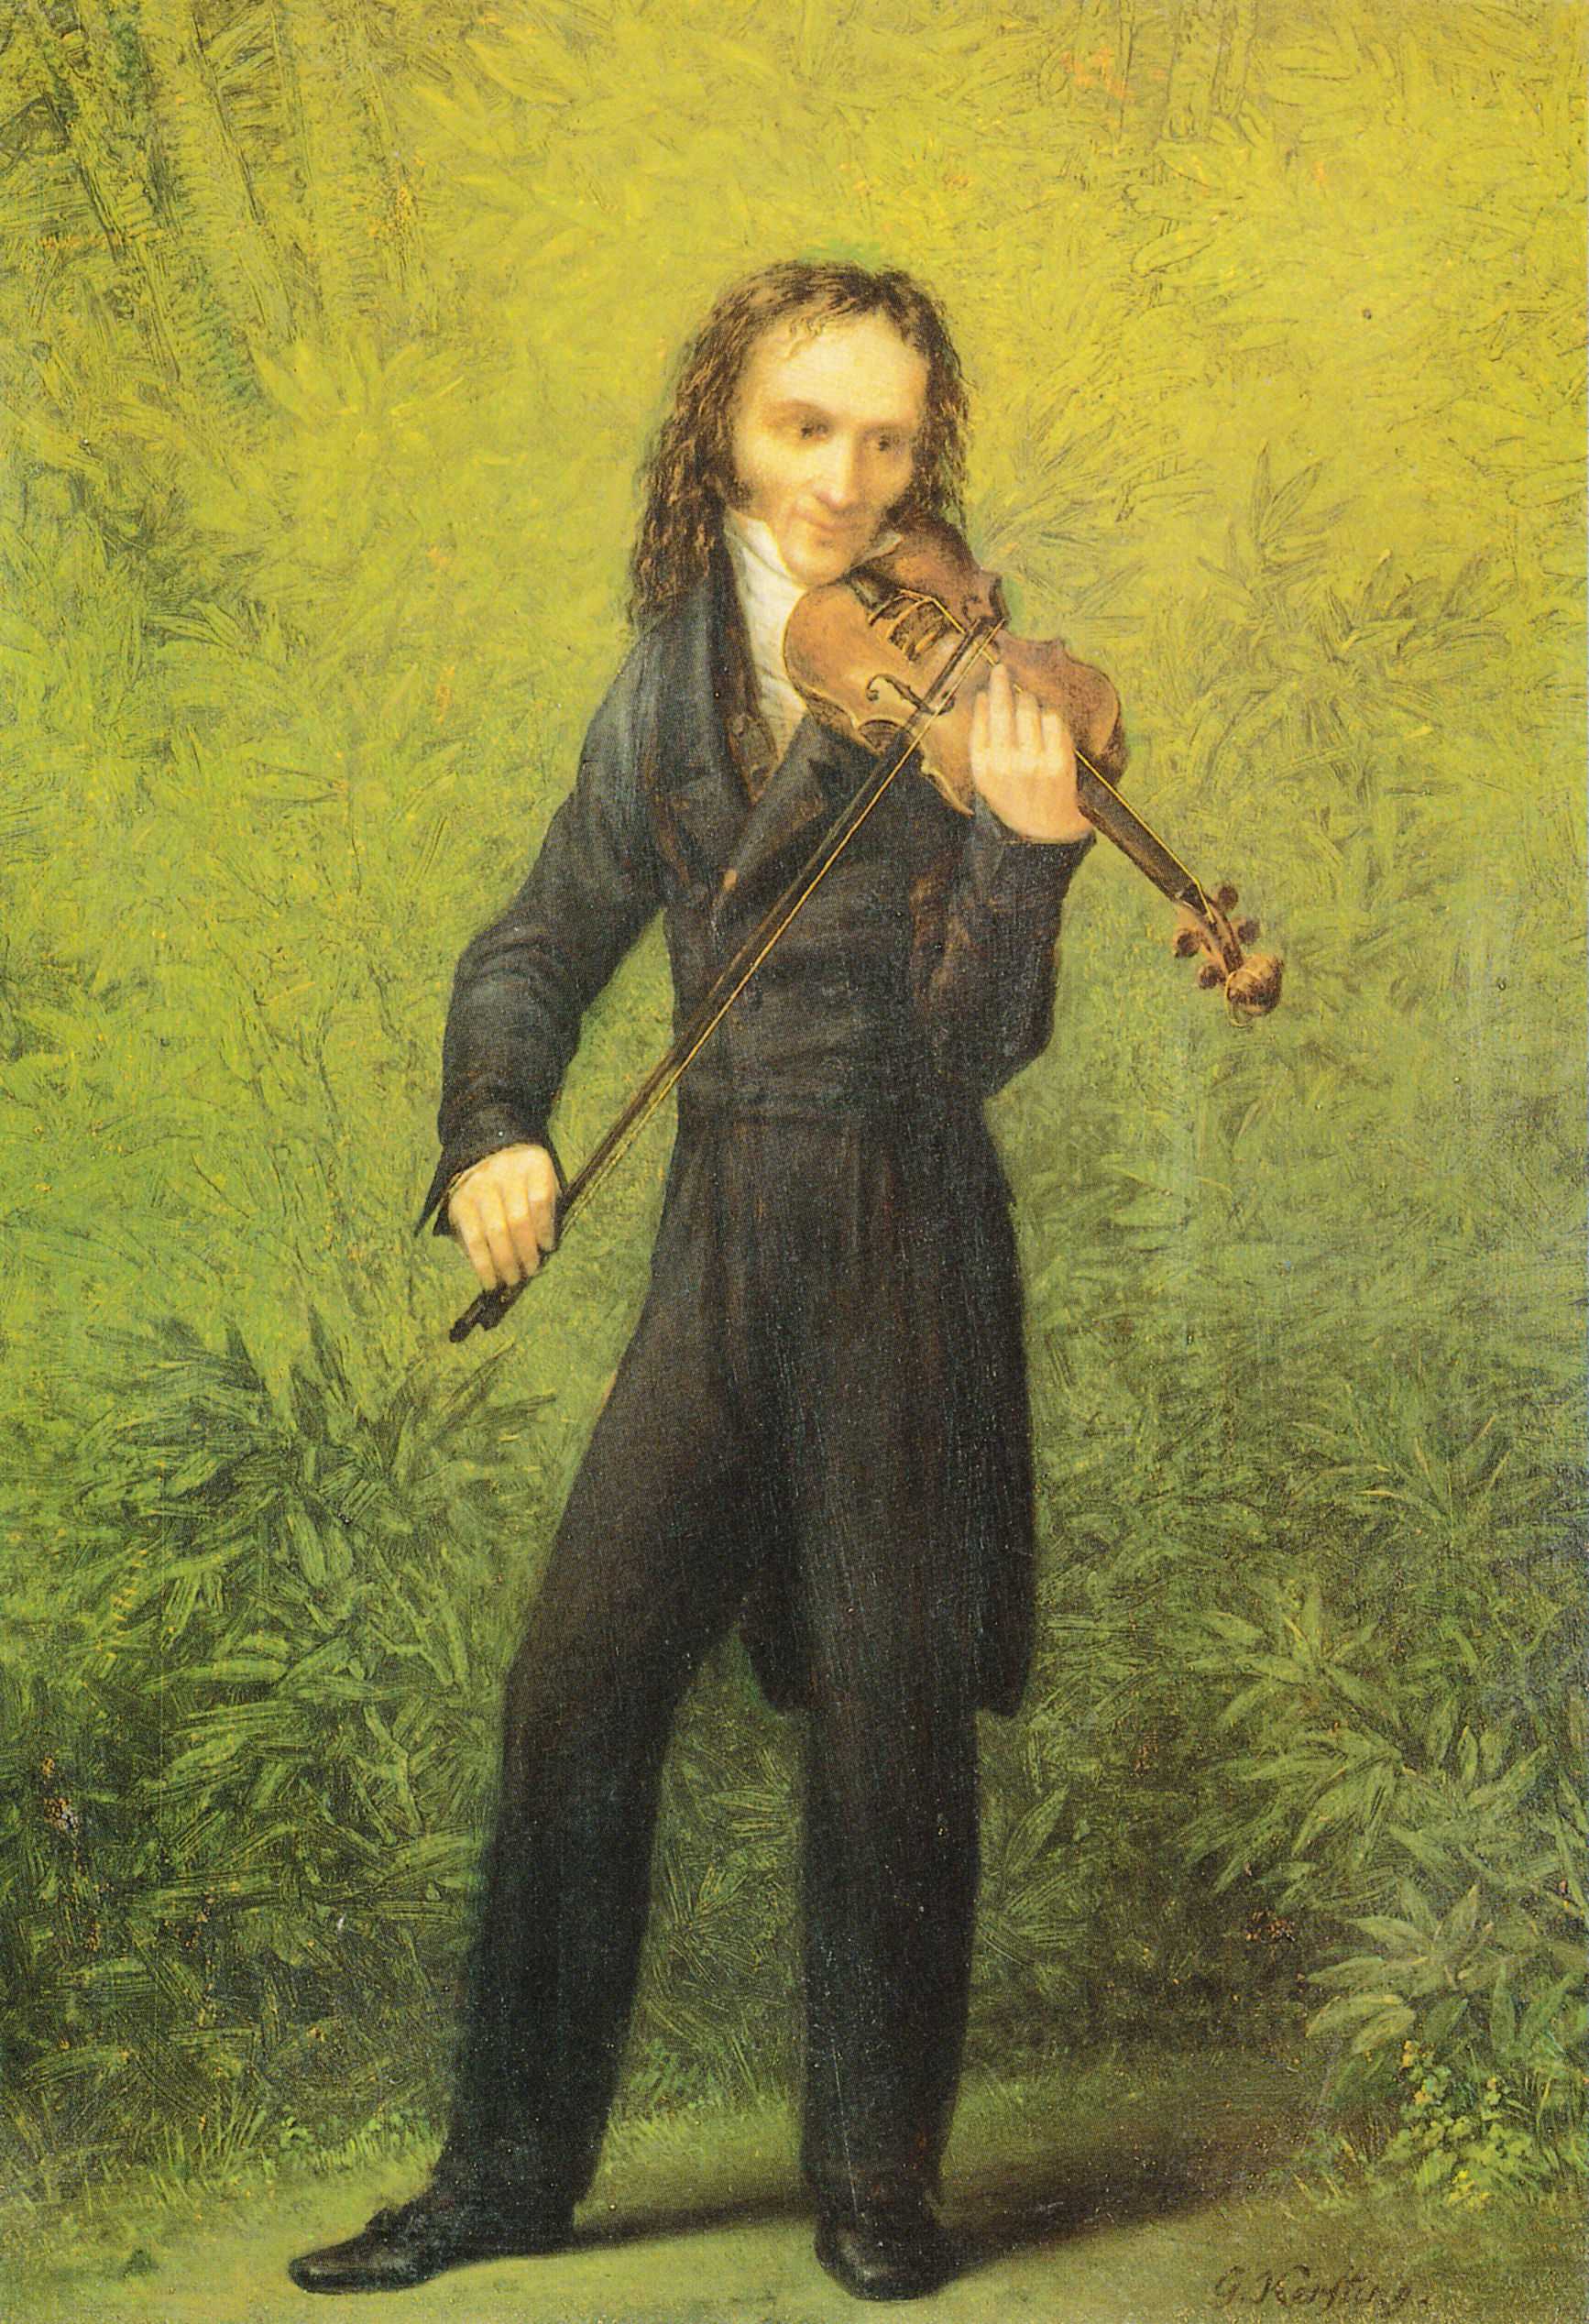 Niccolo Paganini, Georg Friedrich Kersting © Galerie Neue Meister